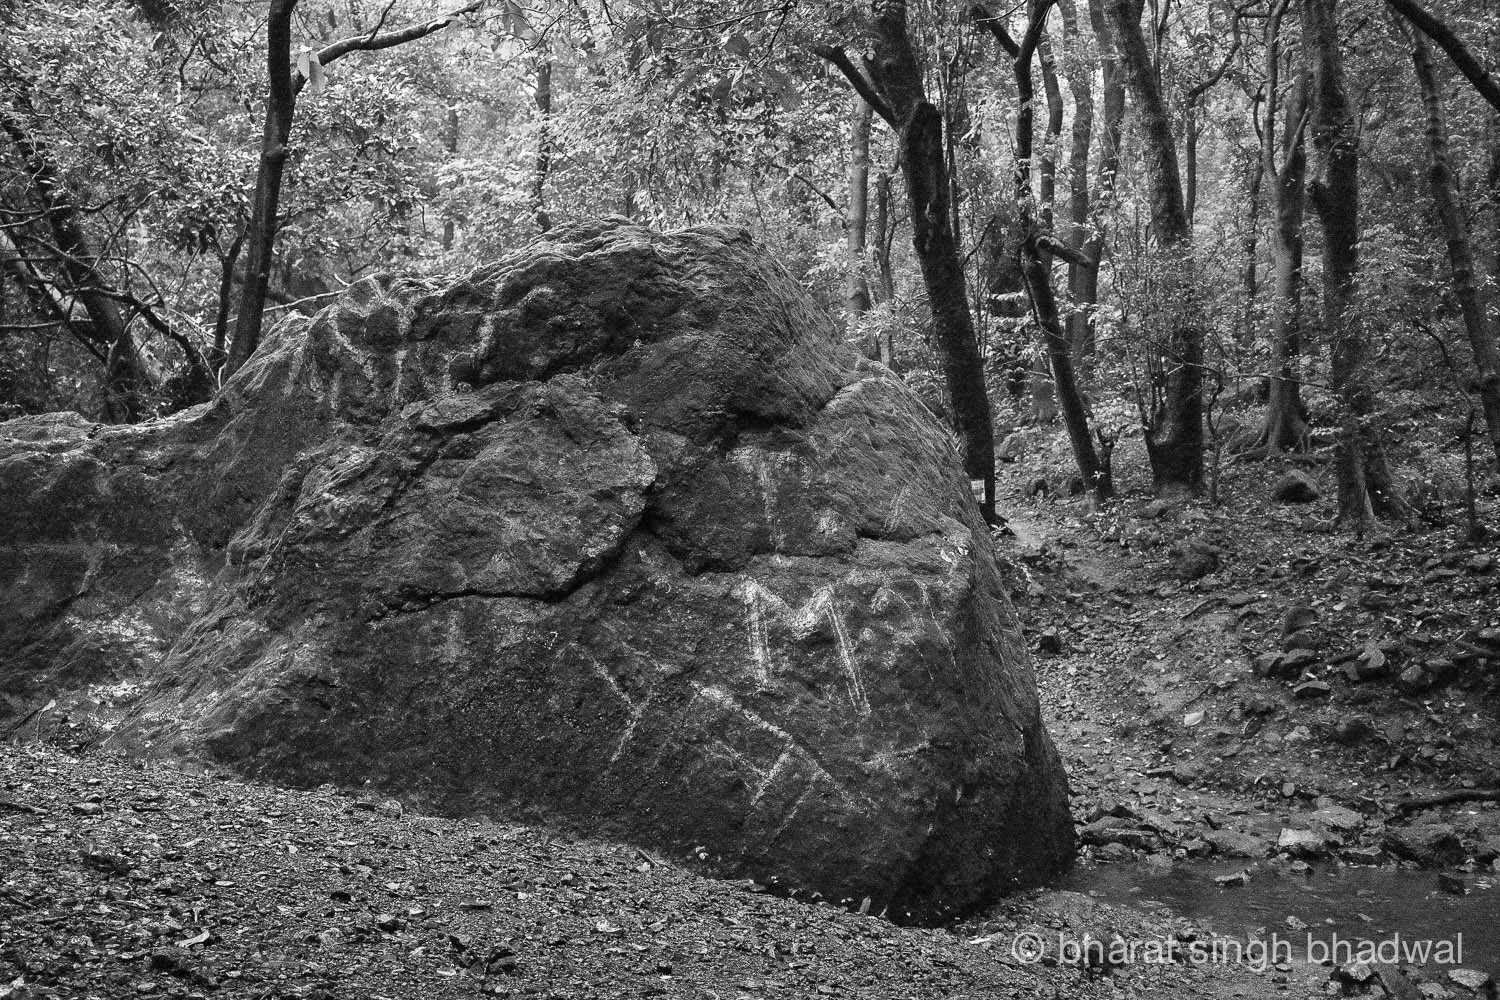 A large boulder along Ganesh Ghat route that has been vandalised.